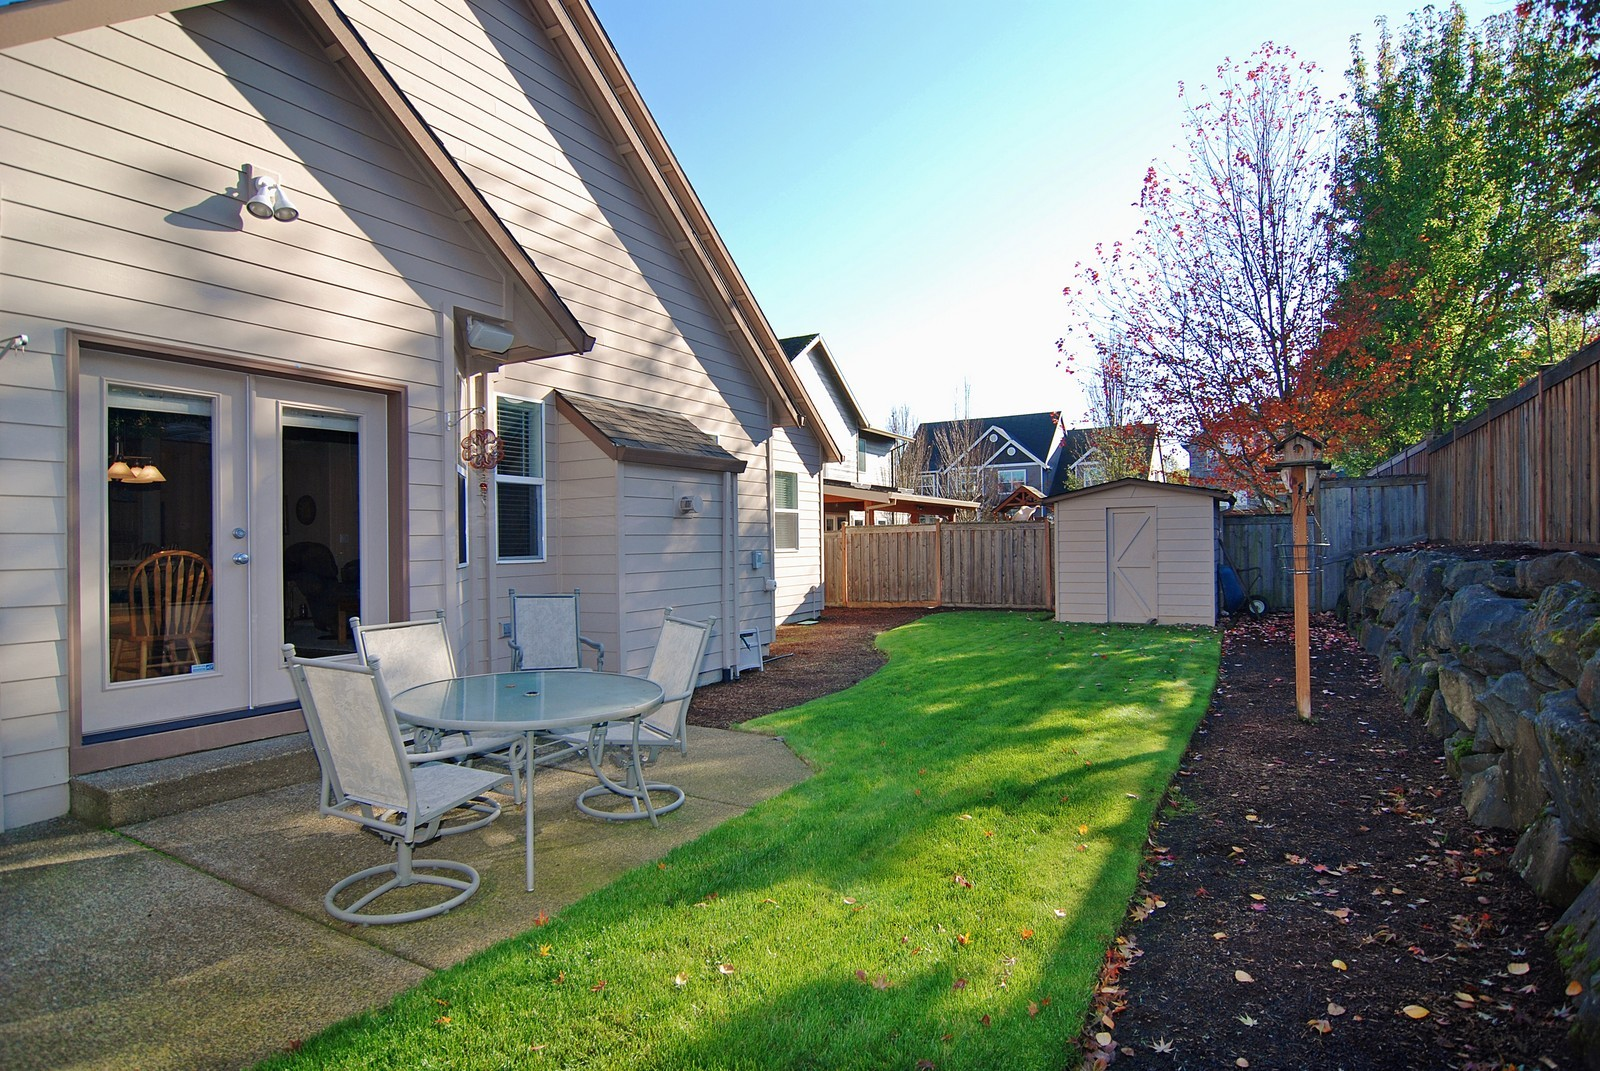 Real Estate Photography - 22553 SW 106th Ave, Tualatin, OR, 97062 - Back Yard